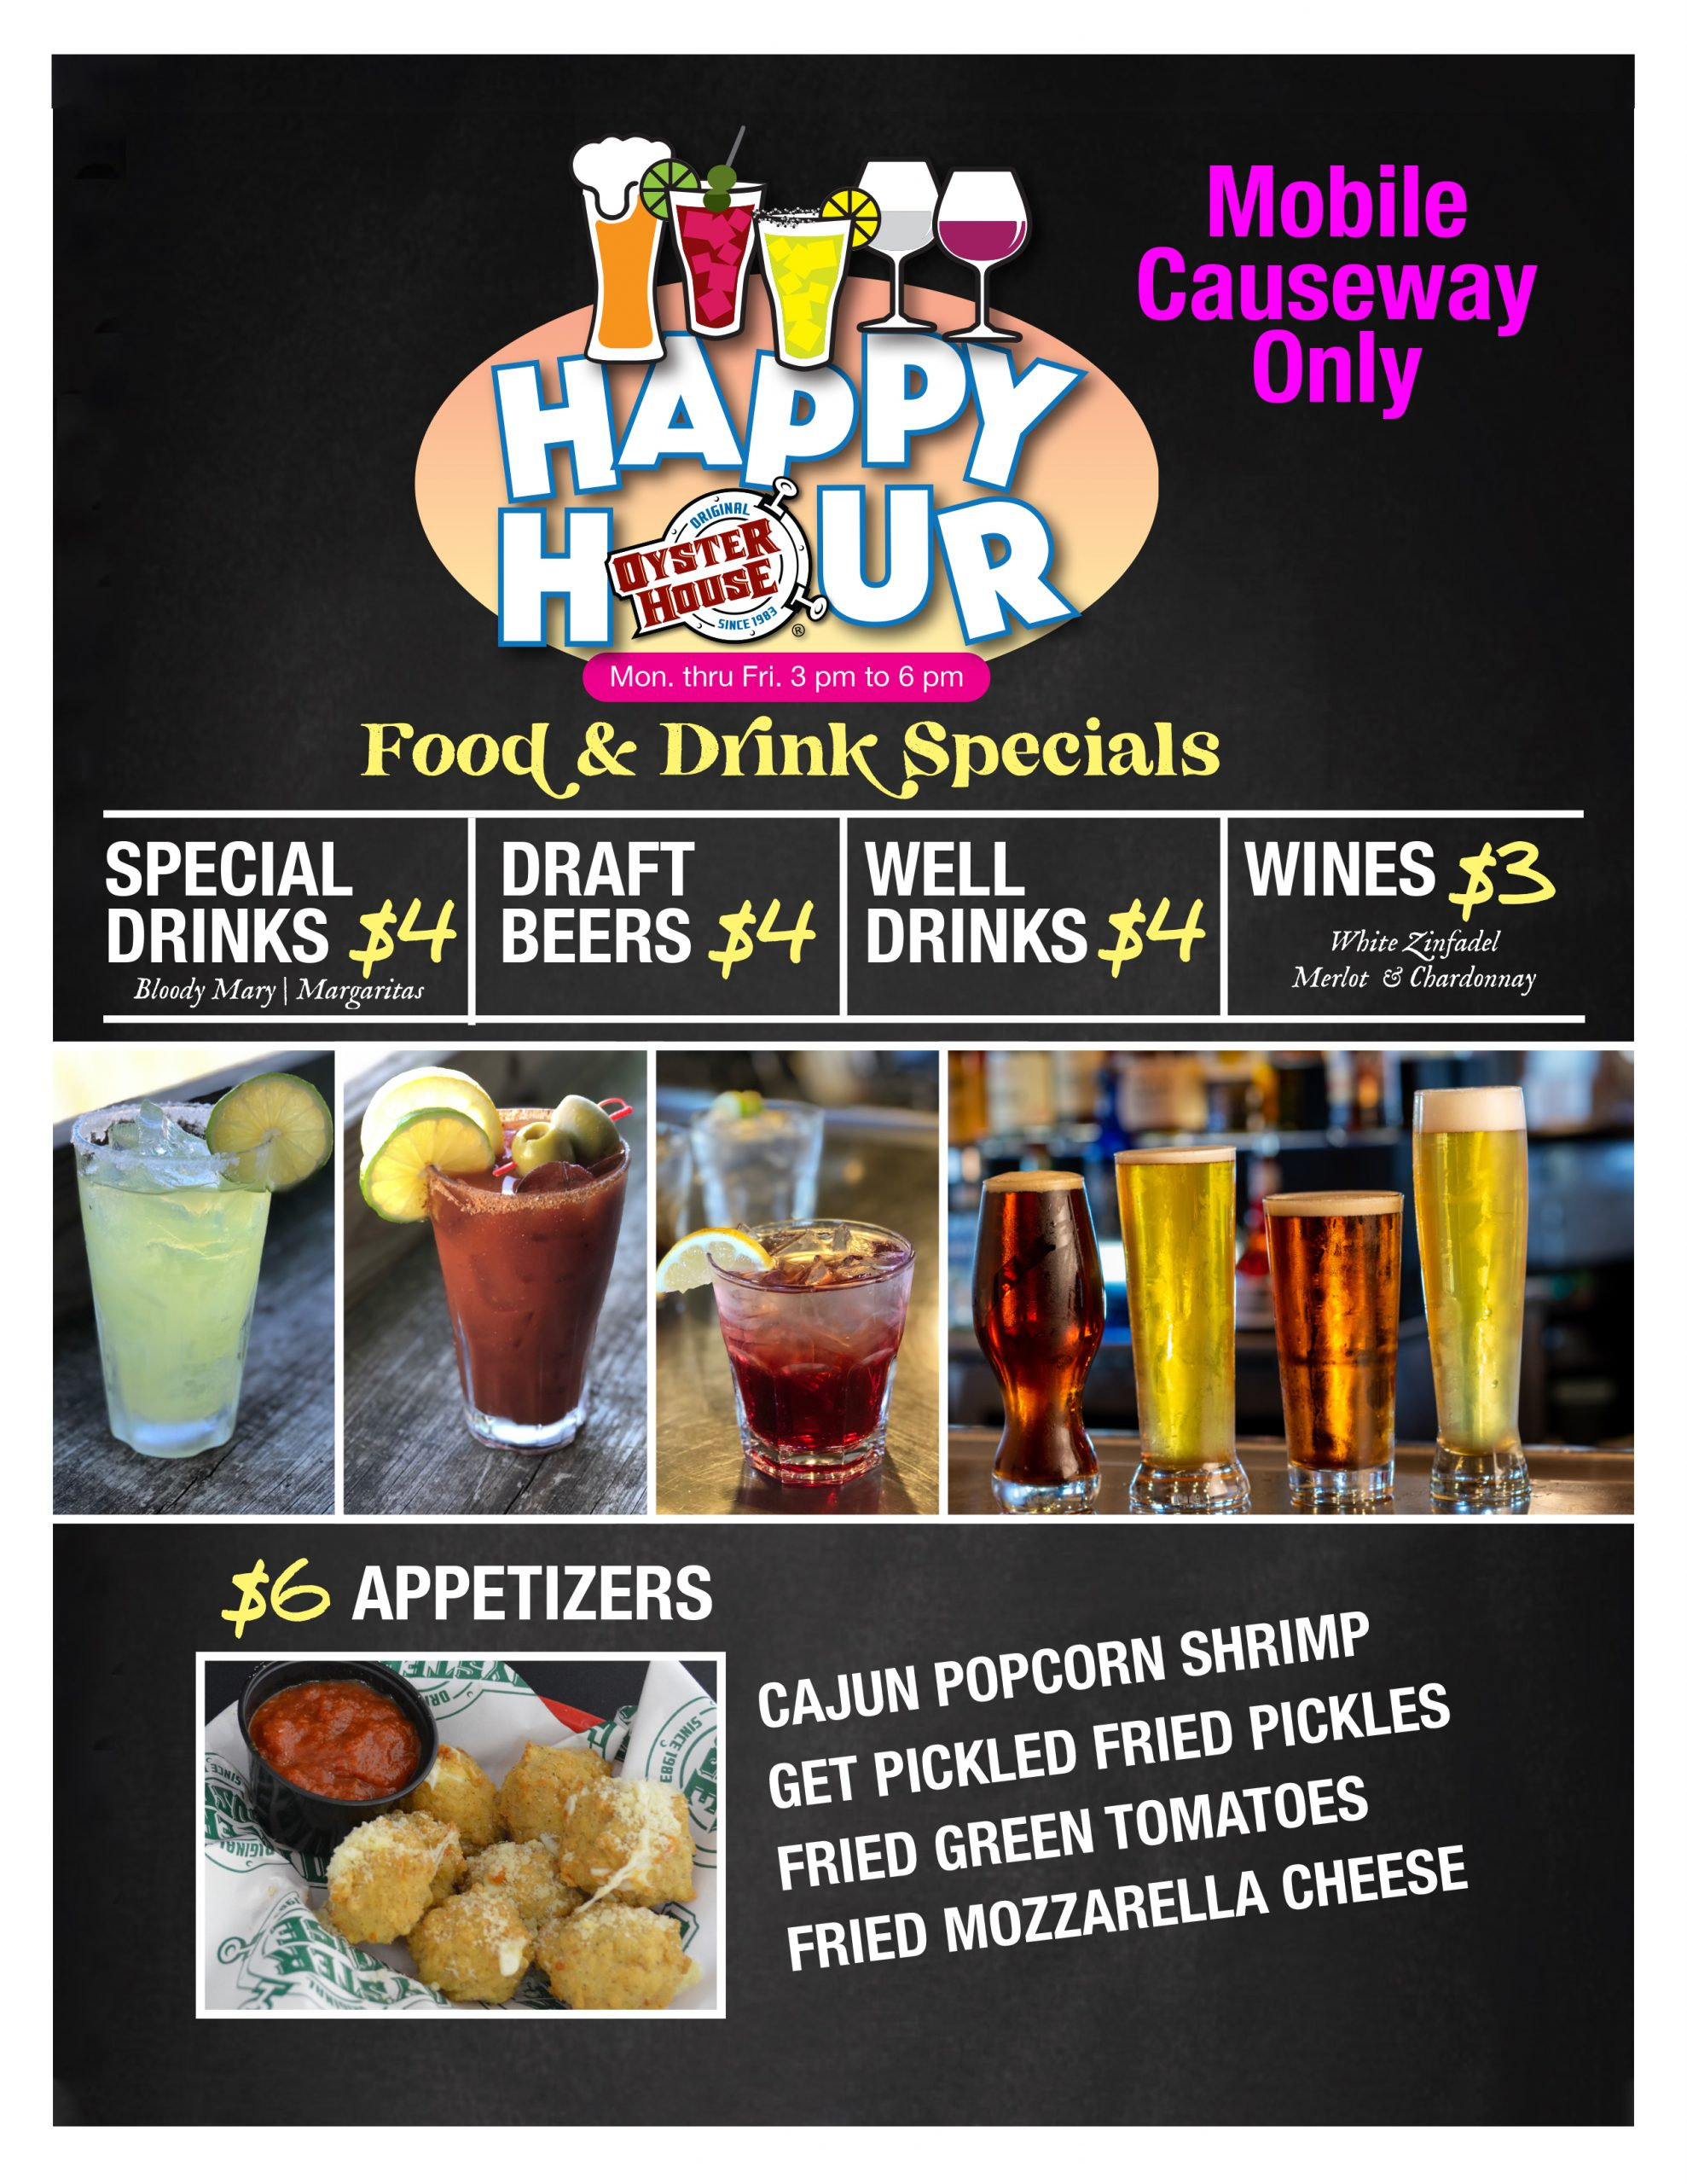 Happy Hour at the Mobile Causeway